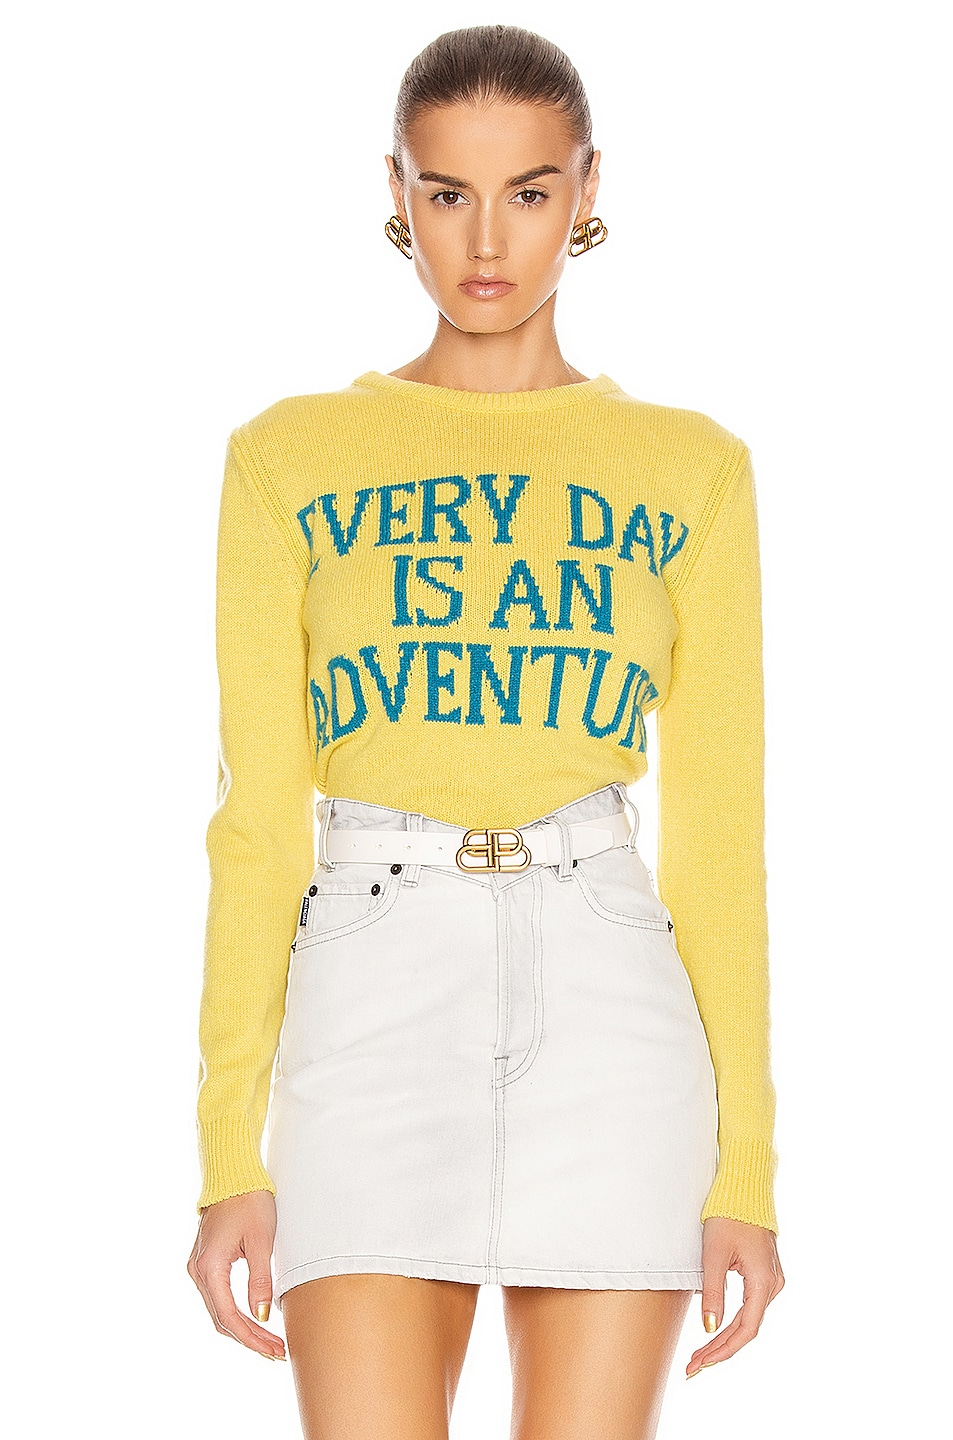 Image 1 of ALBERTA FERRETTI Everyday Is An Adventure Sweater in Yellow & Blue